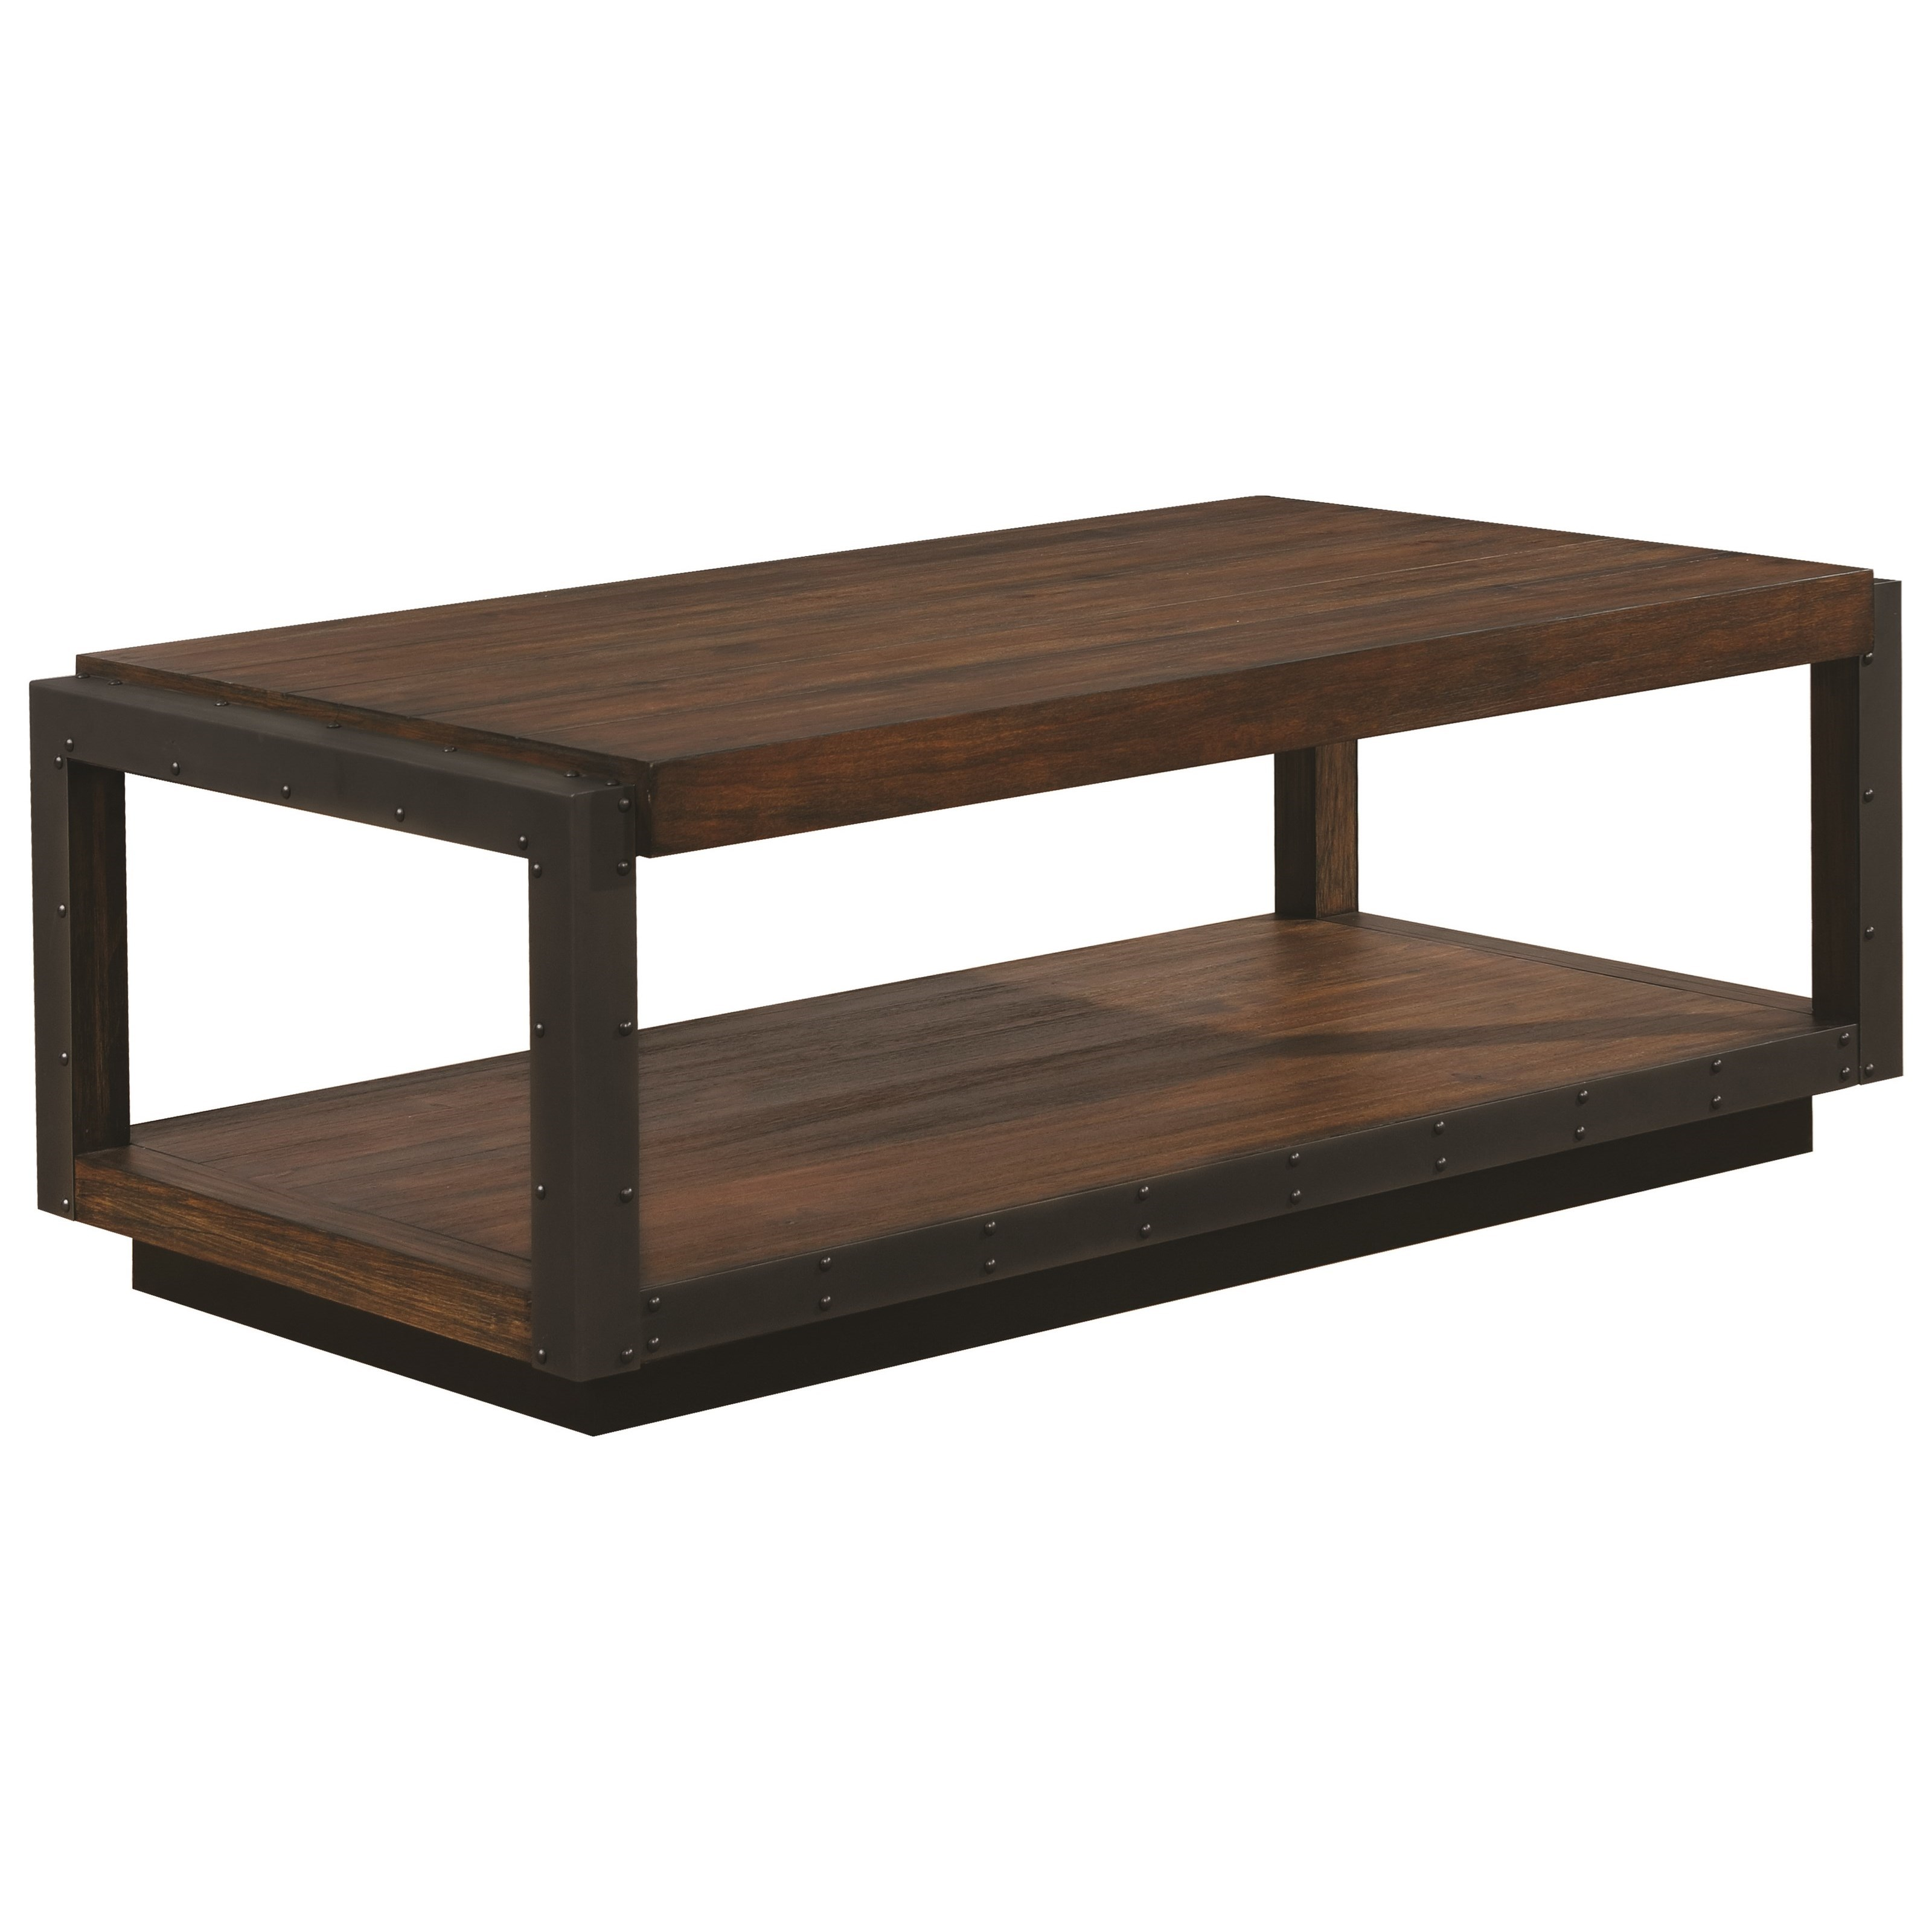 Scott Living 70565 Coffee Table - Item Number: 705658